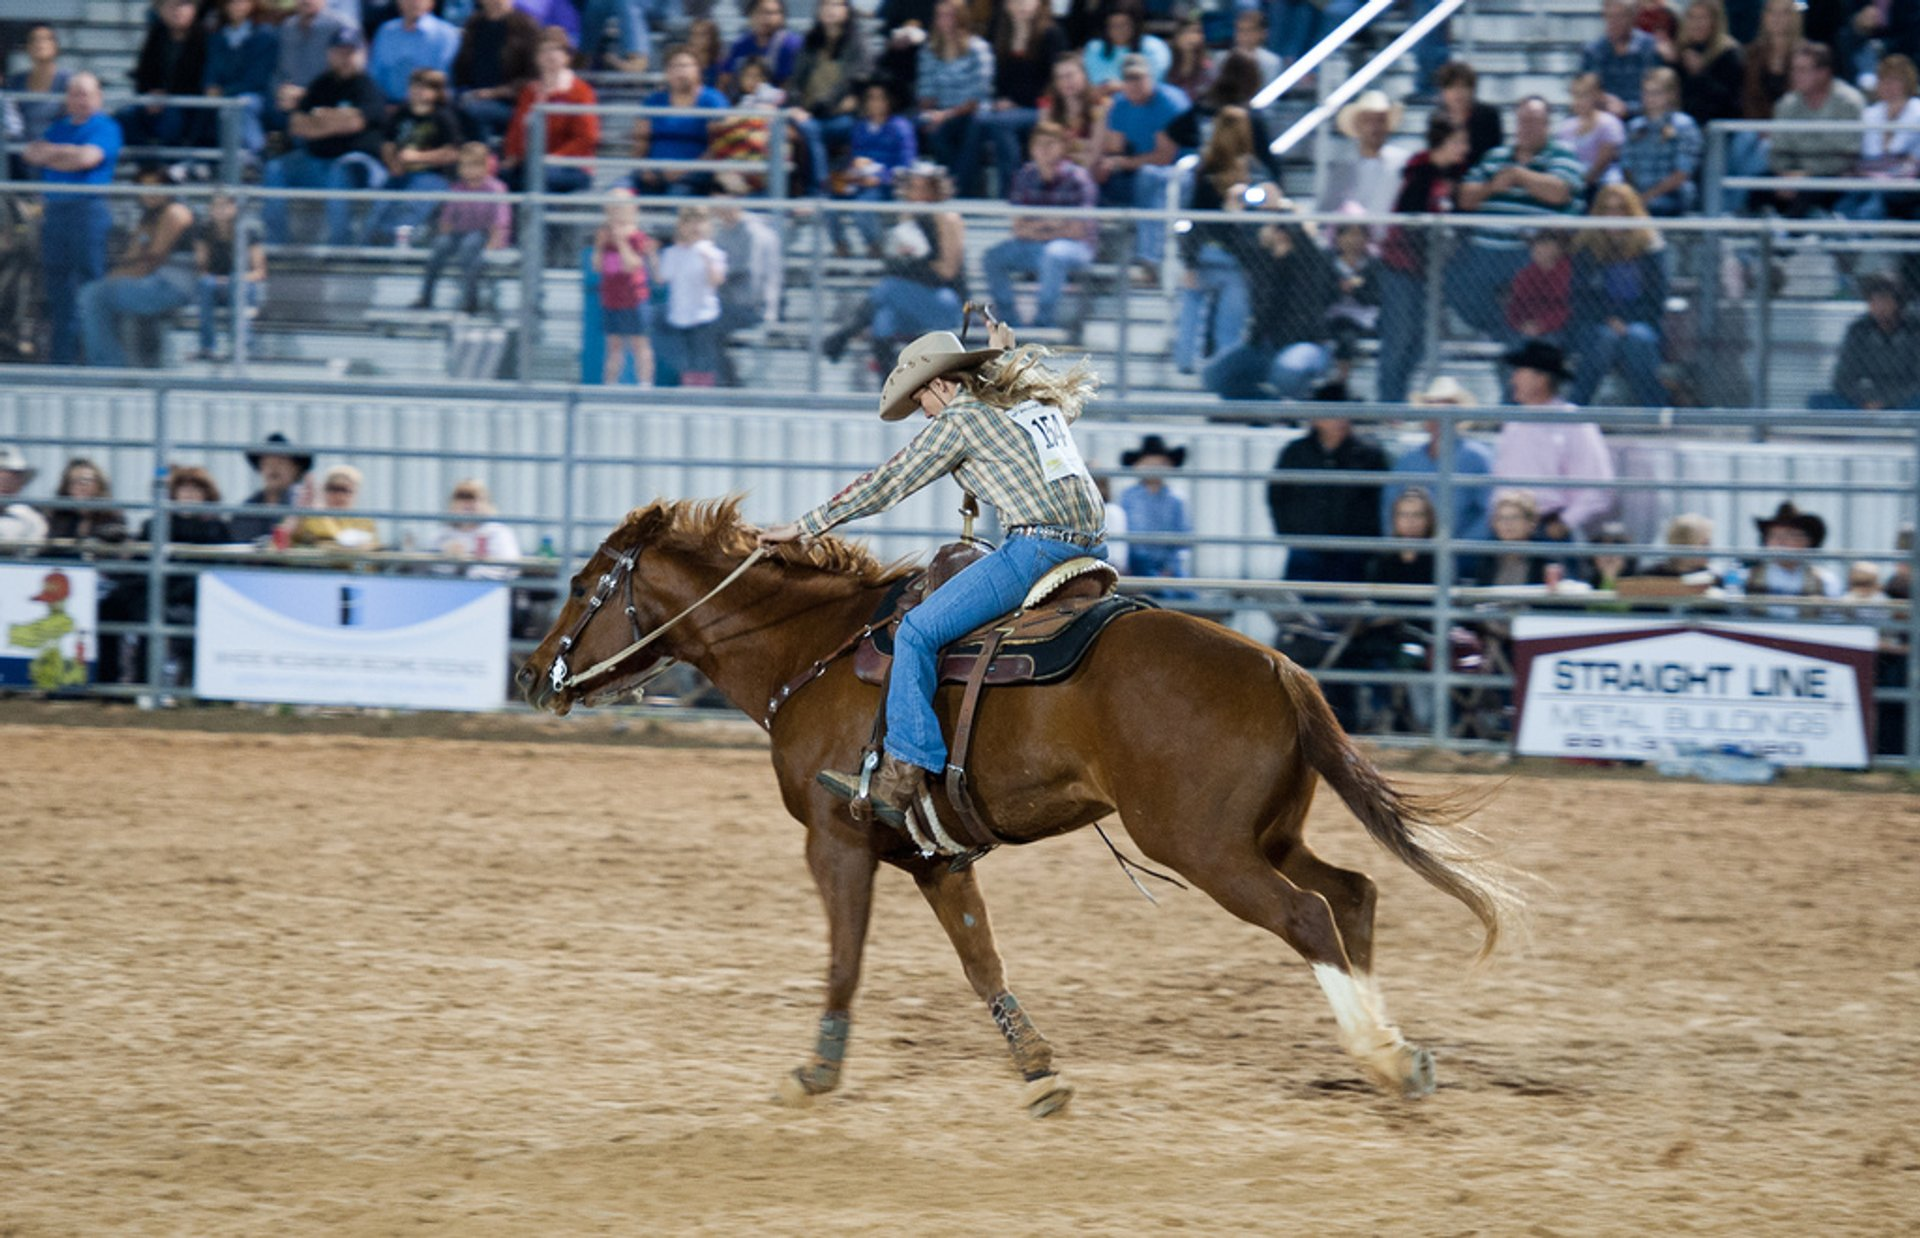 Best time for Rodeo in Texas 2019